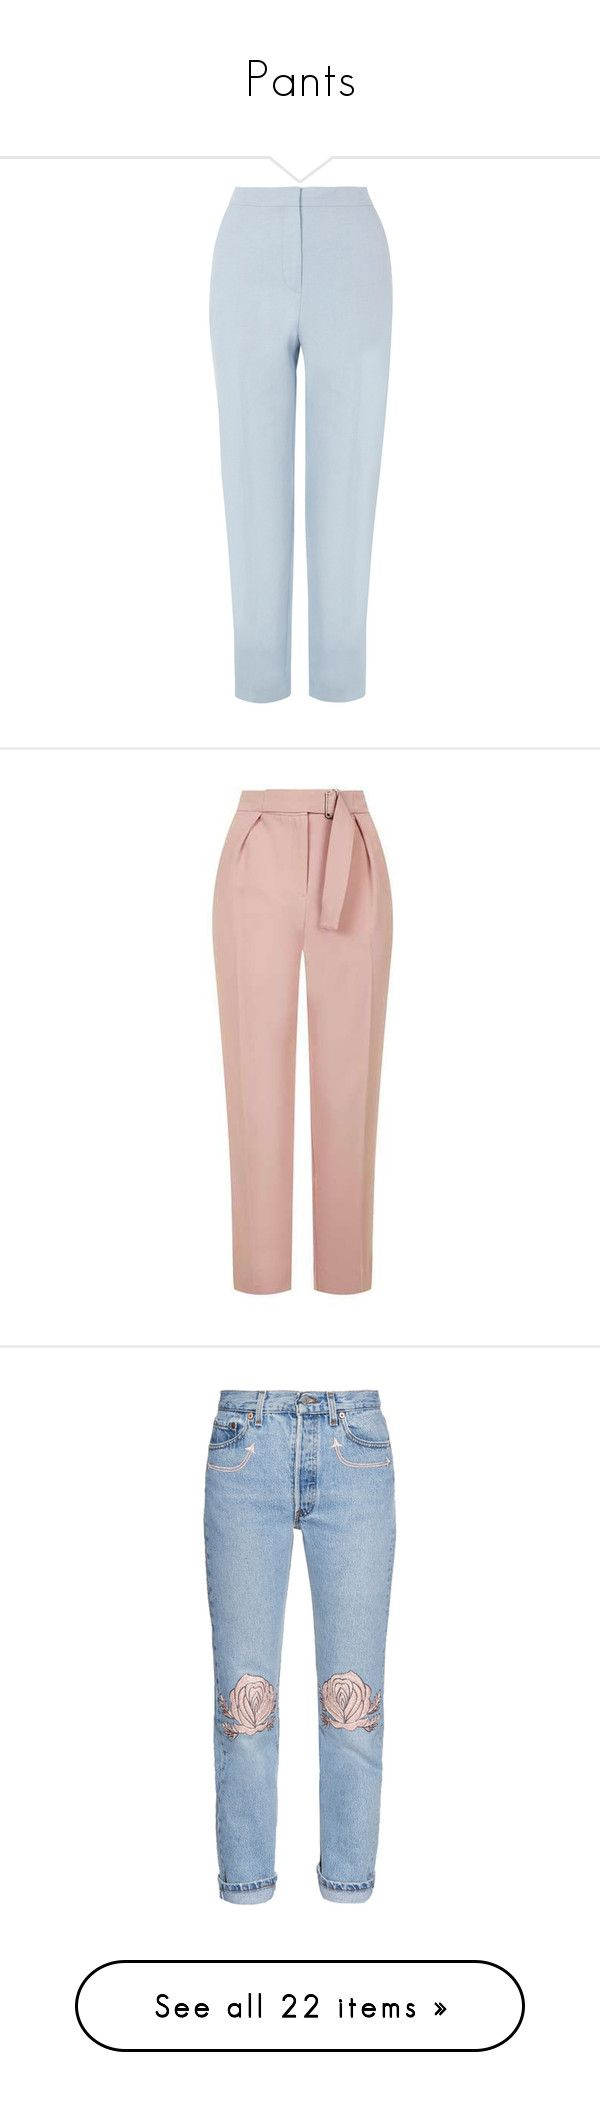 """""""Pants"""" by martsola ❤ liked on Polyvore featuring pants, trousers, bottoms, jeans, pants blue, pastel blue, women, tapered trousers, tapered pants and pastel pants"""